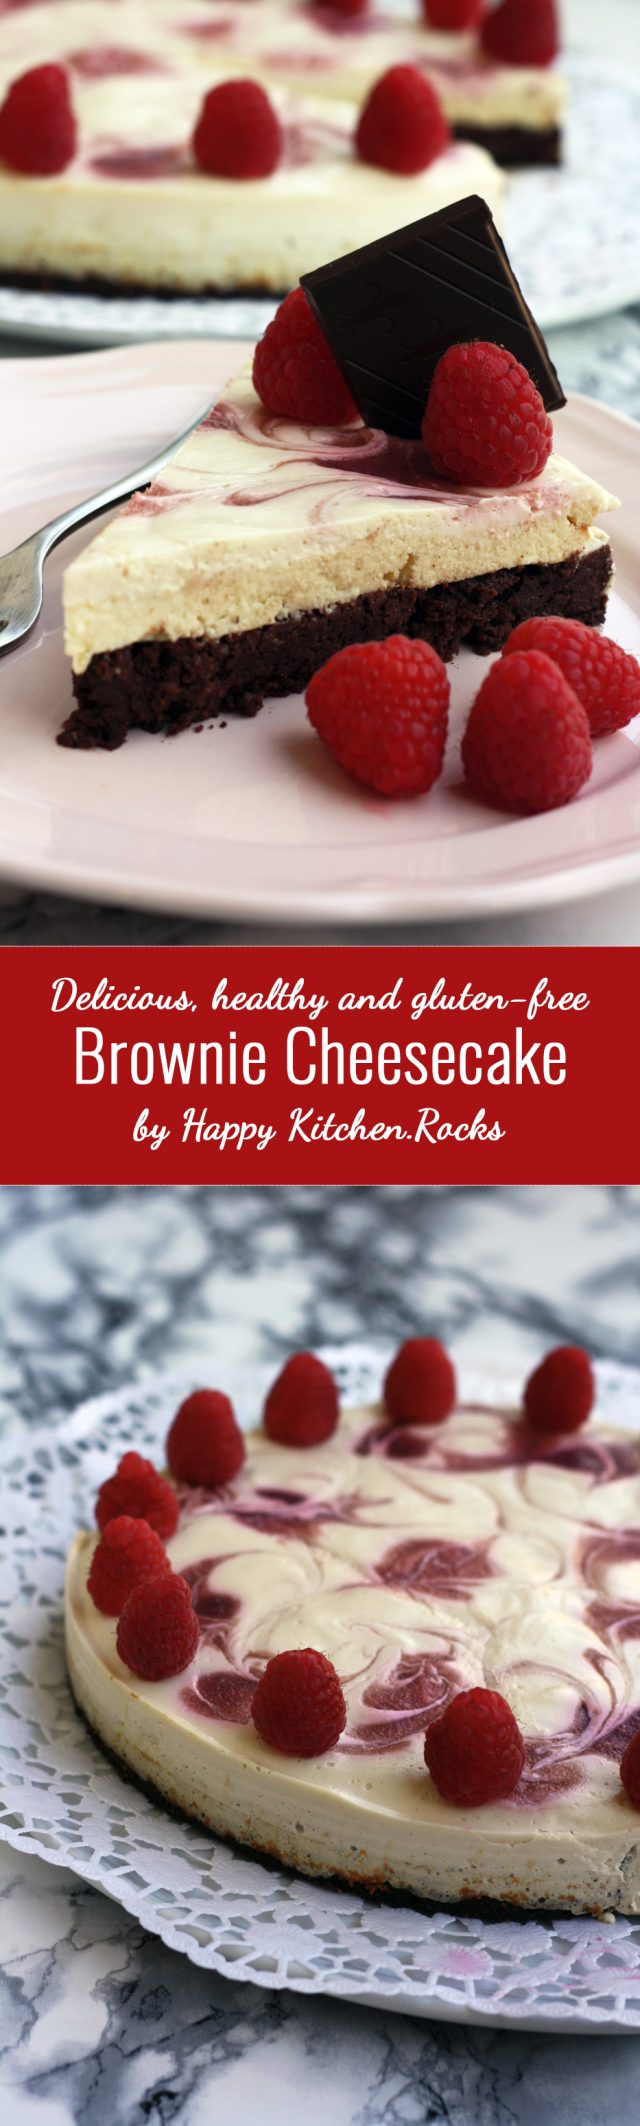 Healthy Brownie Cheesecake Super Long Collage with Text Overlay